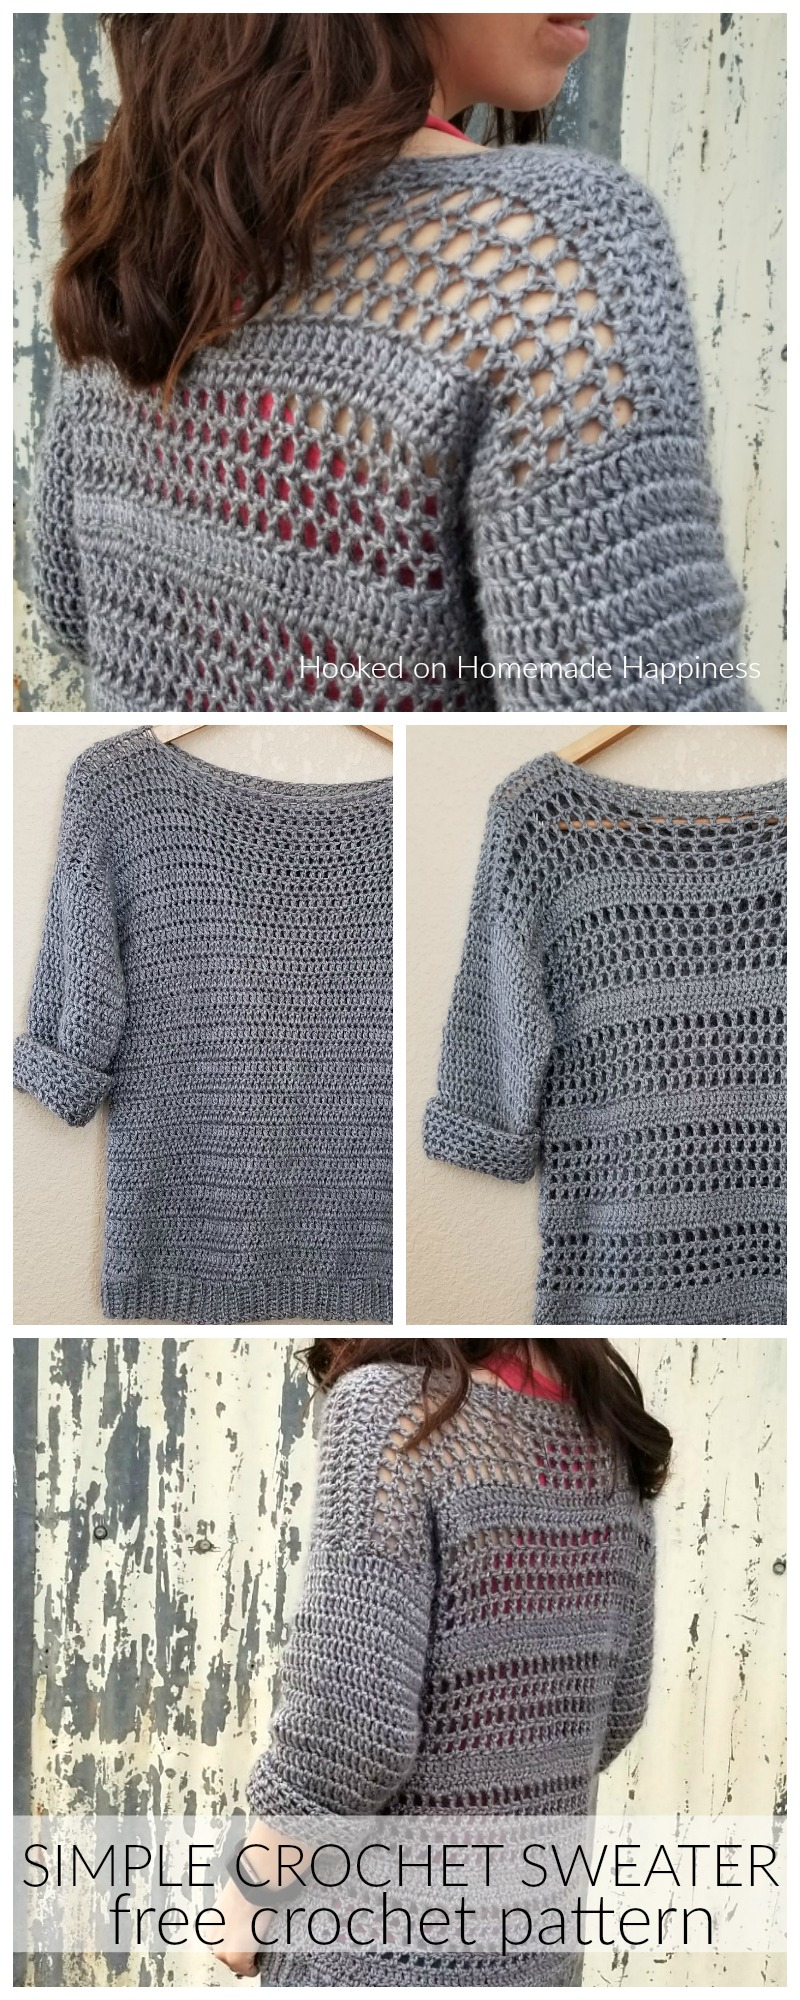 Simple Knit Sweater Pattern Free Simple Crochet Sweater Pattern Hooked On Homemade Happiness